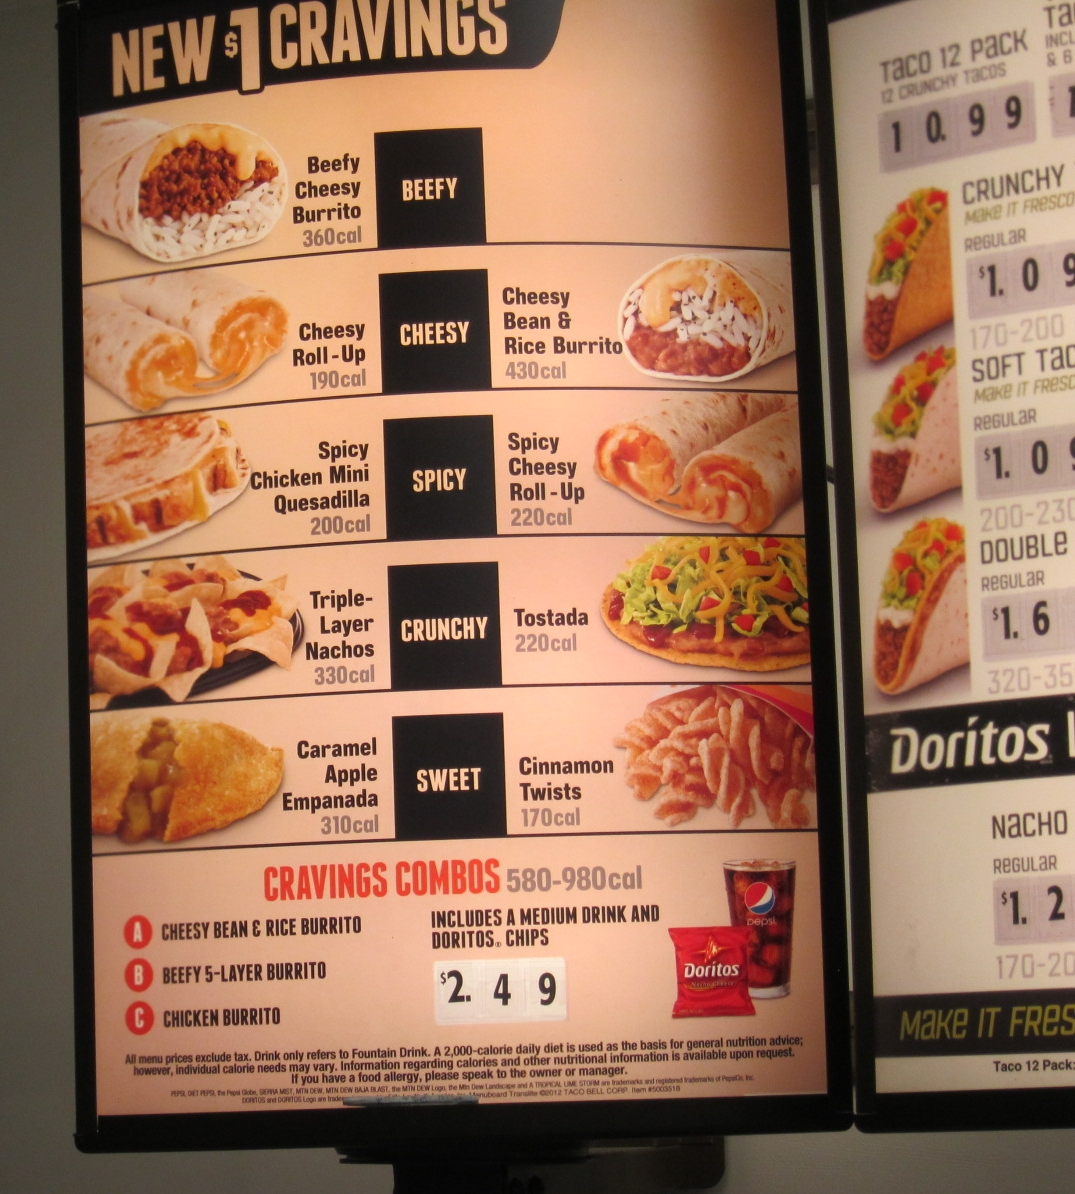 image regarding Taco Bell Printable Coupons known as Taco bell menu 2019 : Apple sotre us